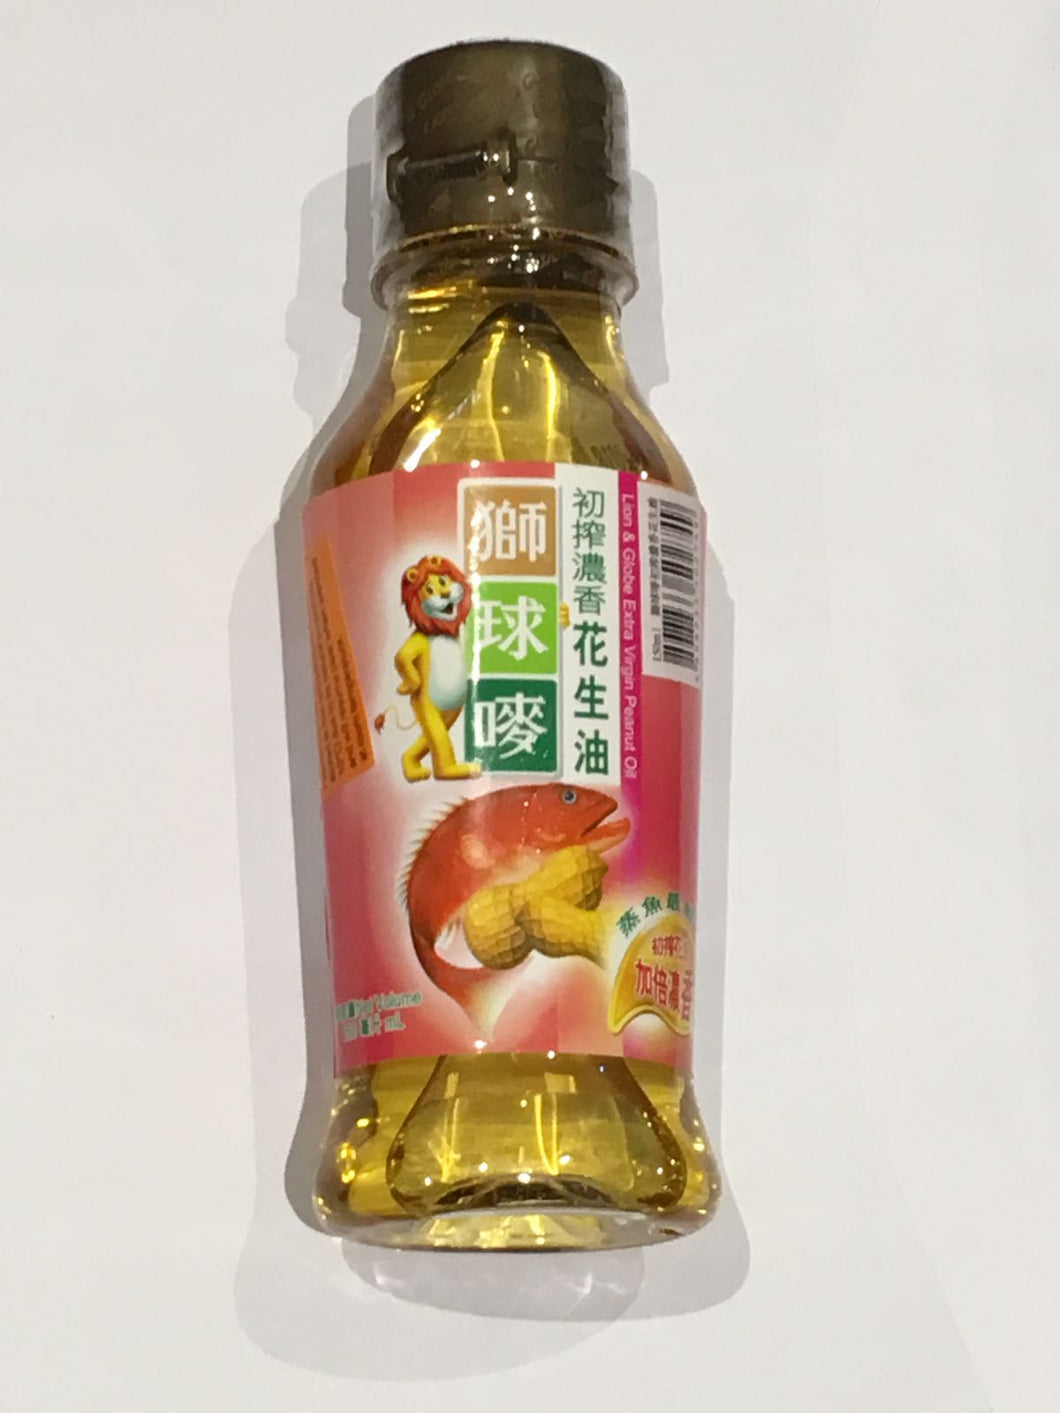 150ml Extra Virgin Paenut Oil - Lion and Globe Brand